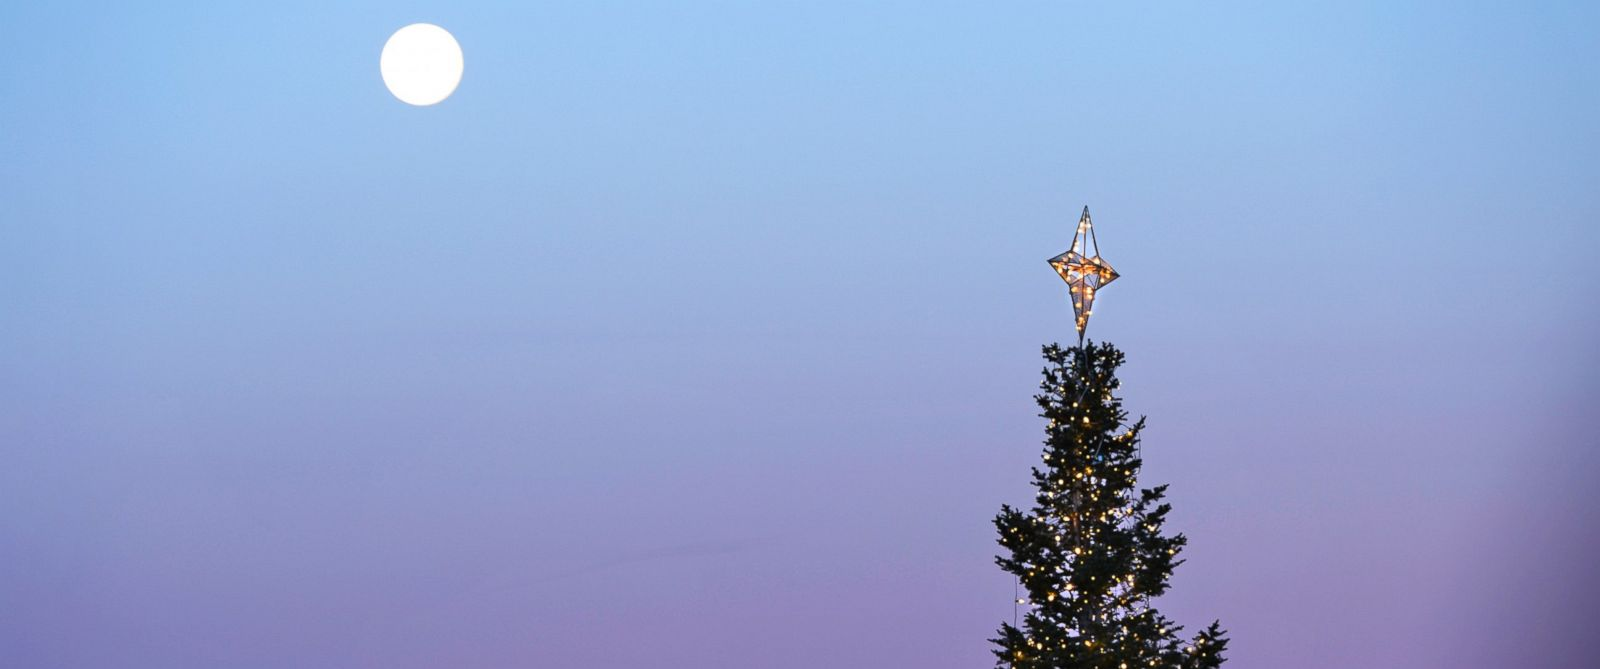 PHOTO: A full moon is seen over a Christmas tree in Centennial Center Park, Centenniel, Colorado on Dec. 18, 2013.